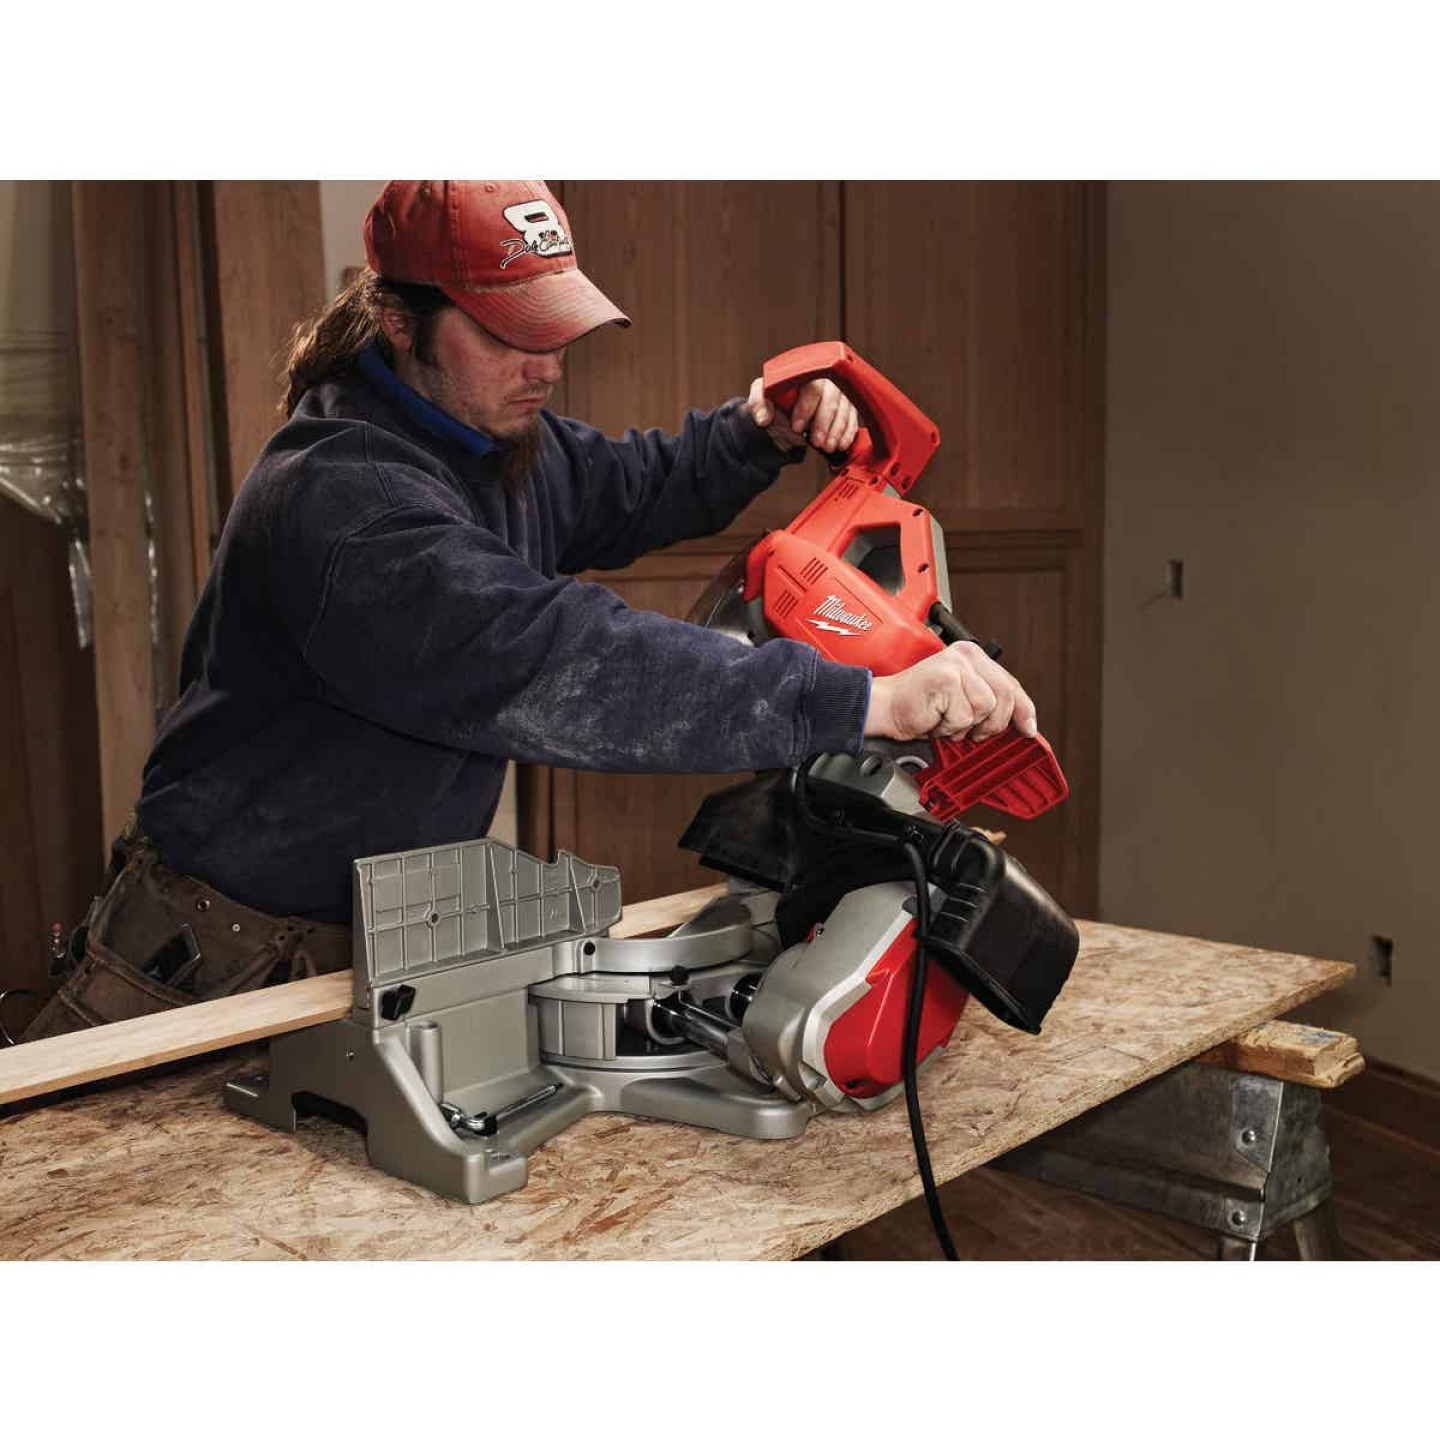 Milwaukee 12 In. 15-Amp Dual-Bevel Sliding Compound Miter Saw Image 2